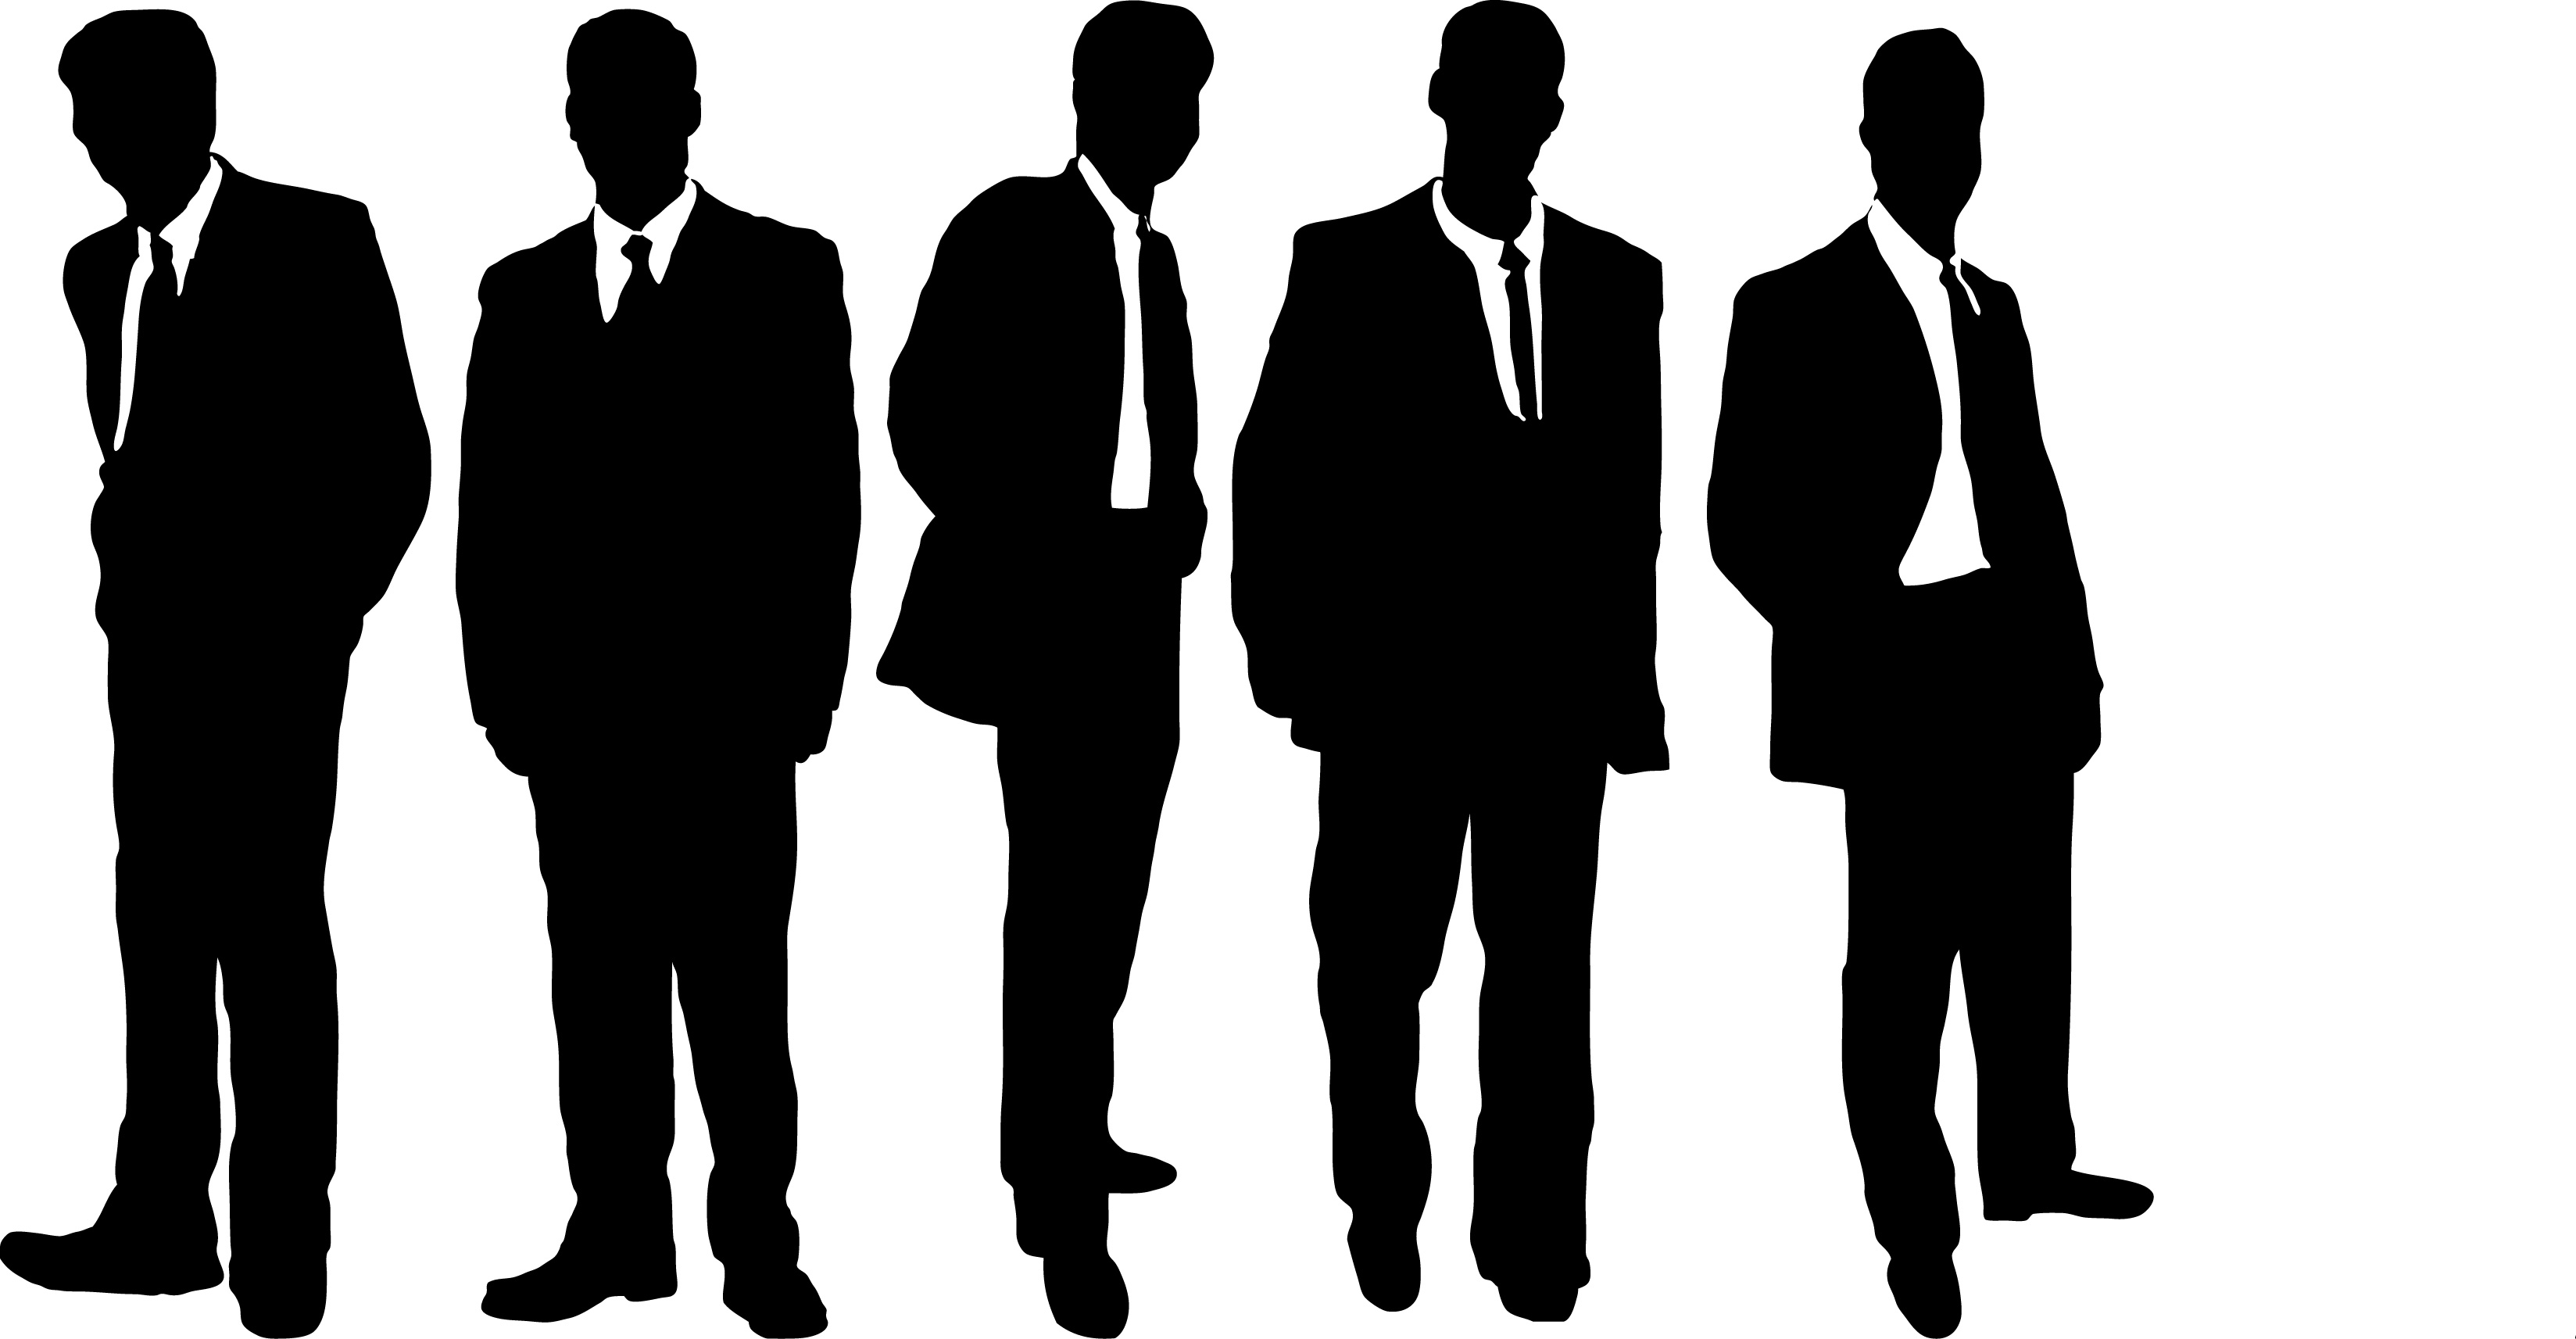 3296x1713 Free Clip Art Pictures Of People Dromgfp Top